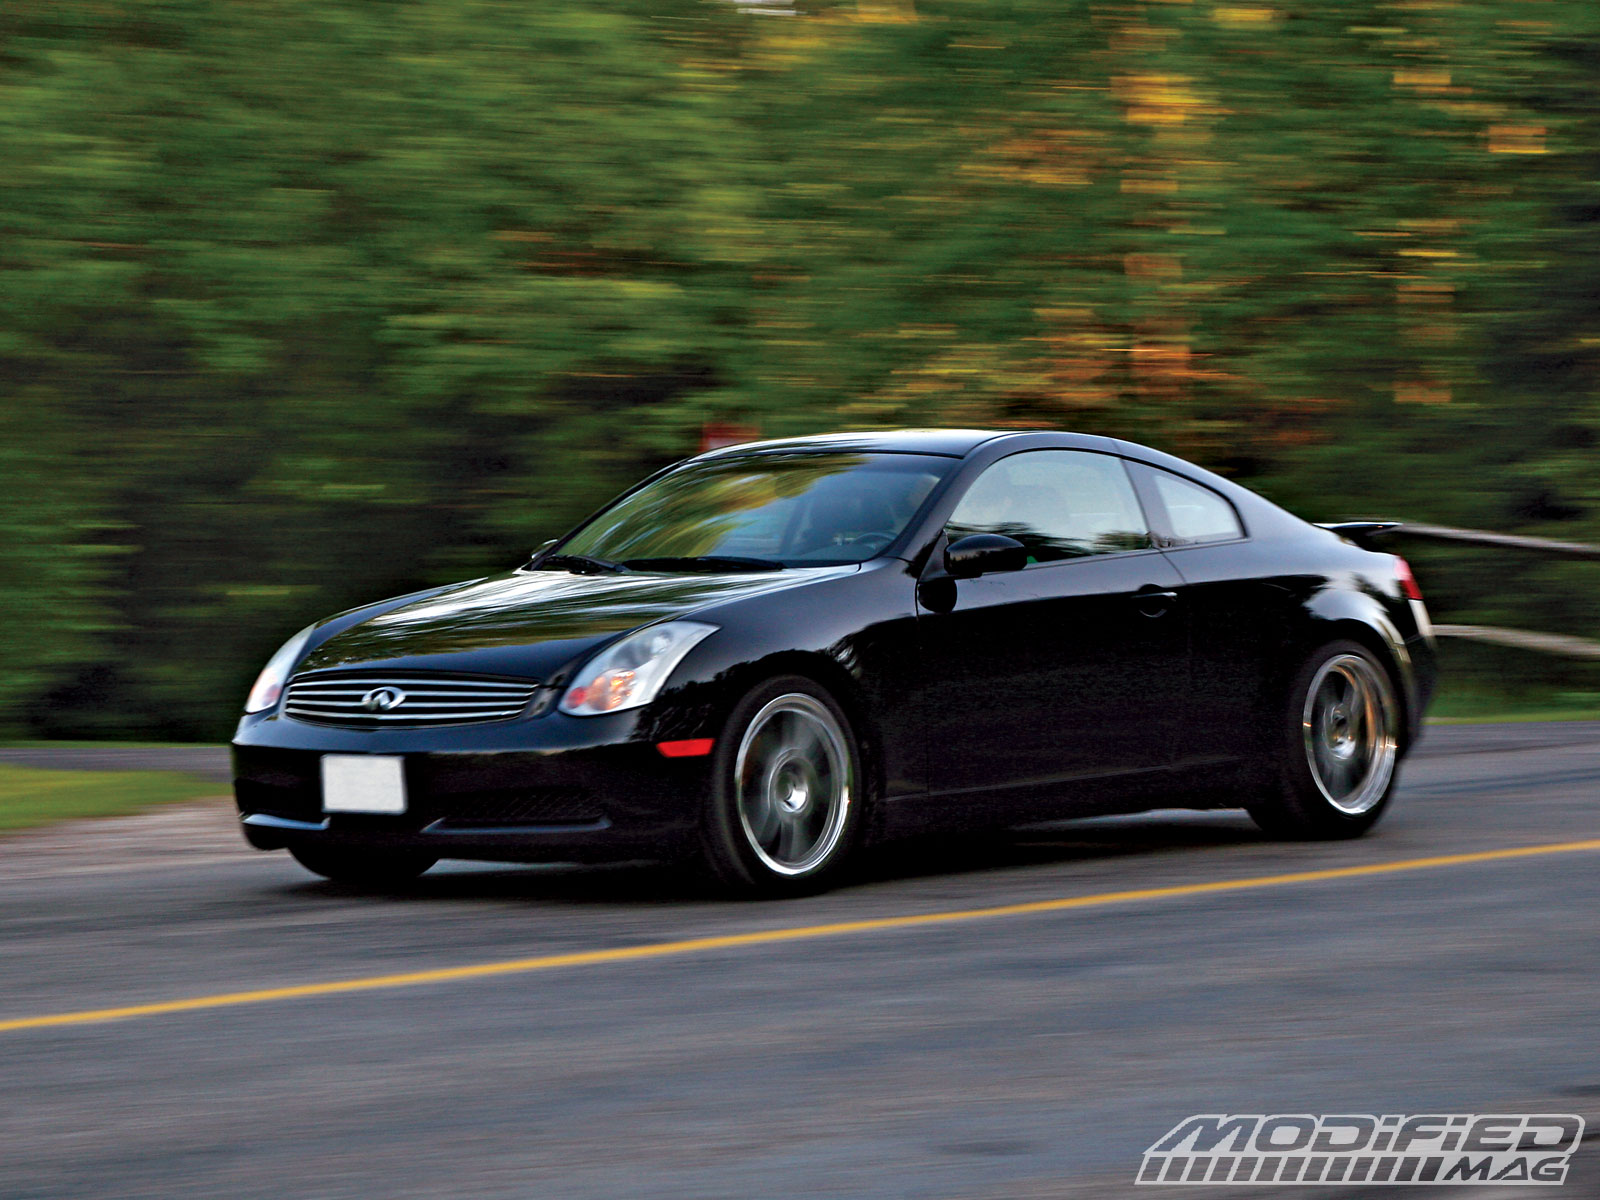 100 reviews 2003 g35 infiniti coupe on margojoyo 2003 infiniti g35 information and photos zombiedrive vanachro Image collections